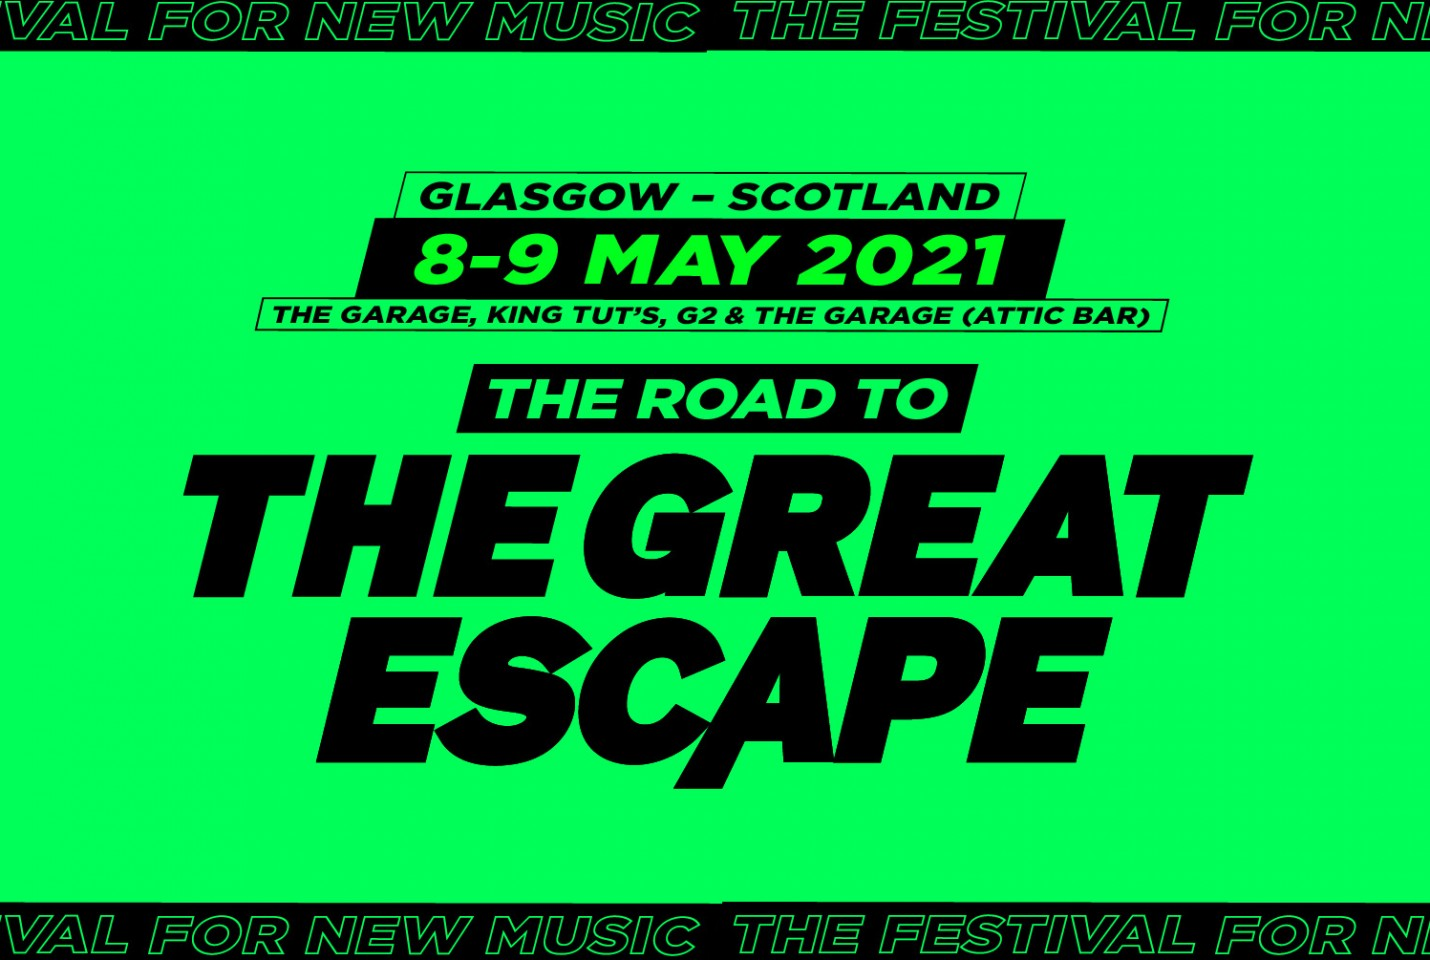 The Road To The Great Escape - First wave of acts announced!